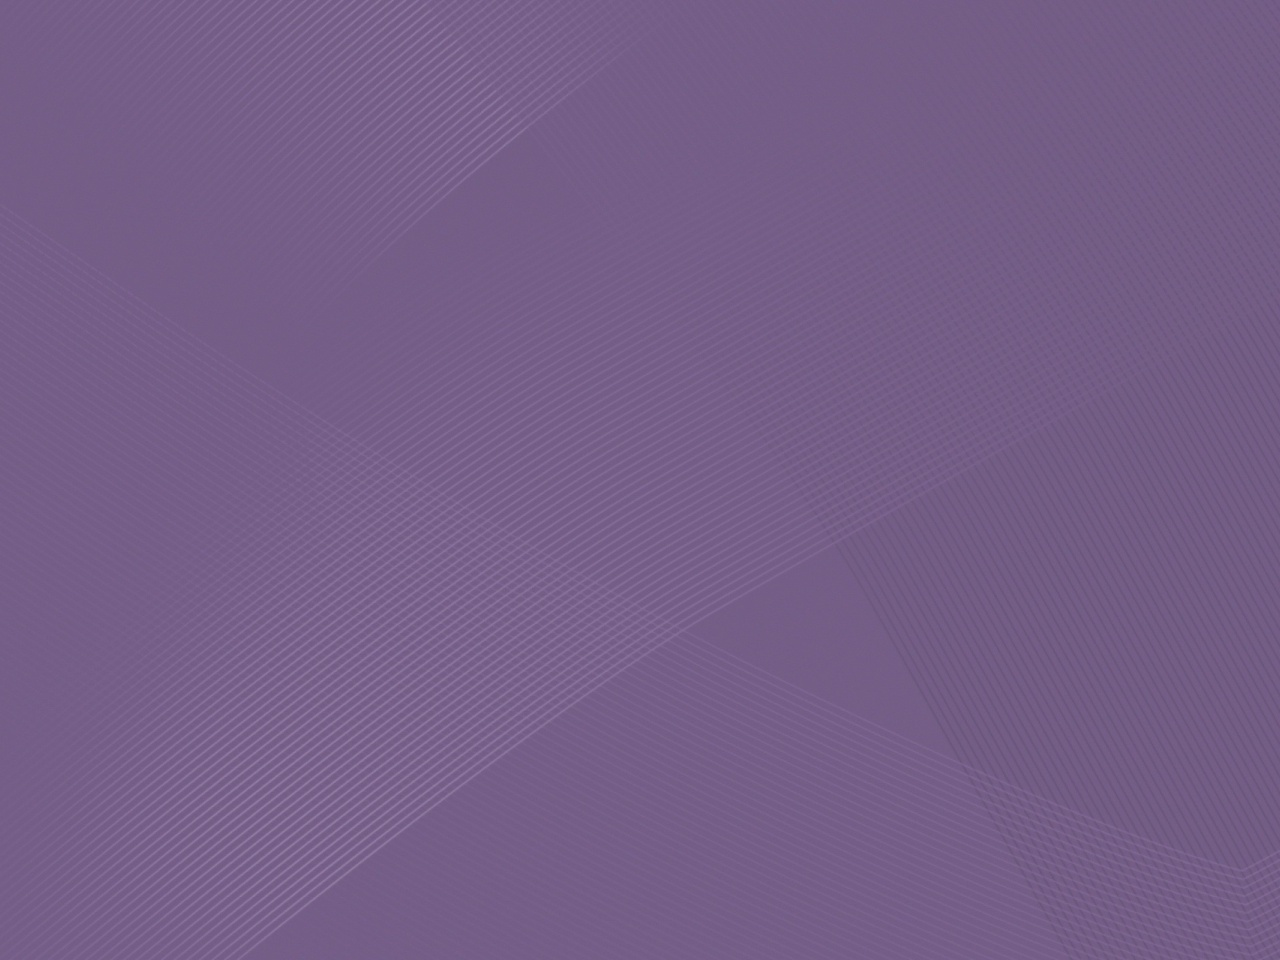 1280x960 Simple Plum Background